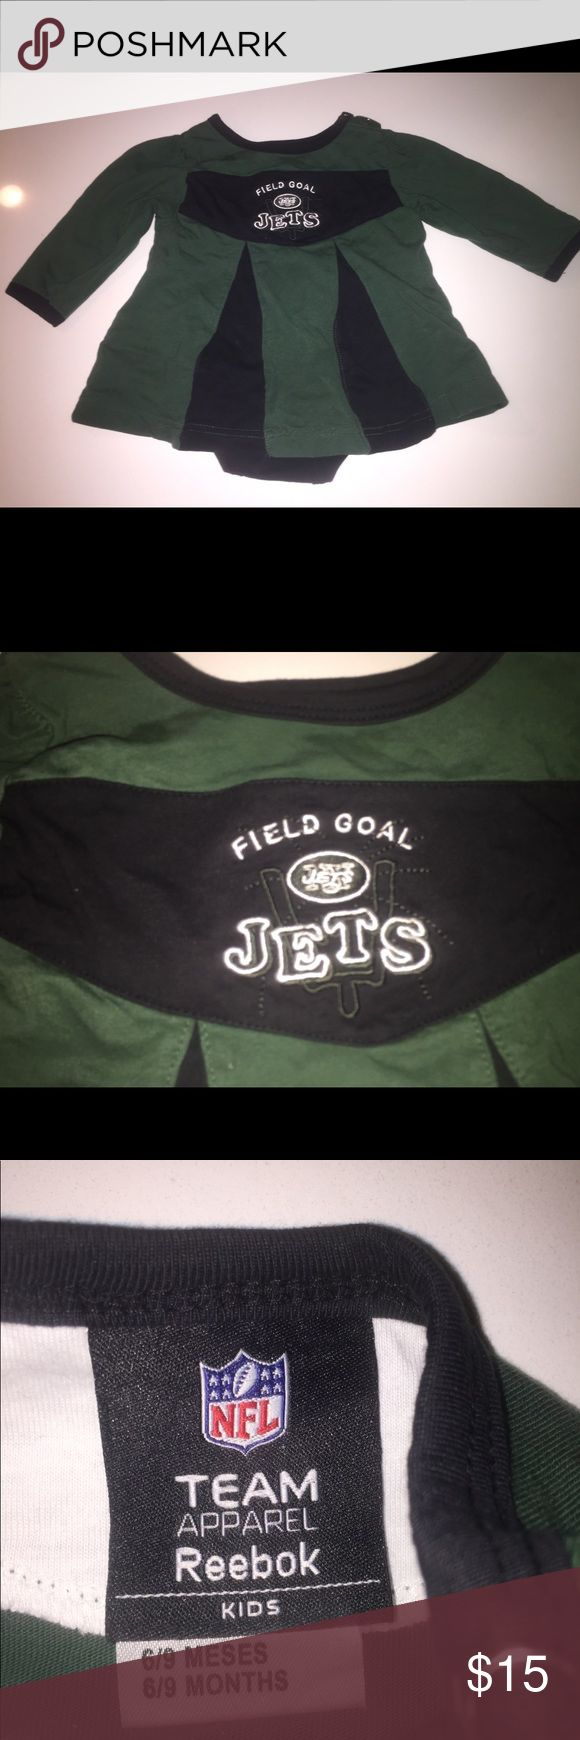 Nfl team apparel Reebok new york jets dress 6-9 mo This is a great cheer dress with long sleeves for your littlest jets fan. Size 6-9 MO no flaws Reebok Dresses Casual